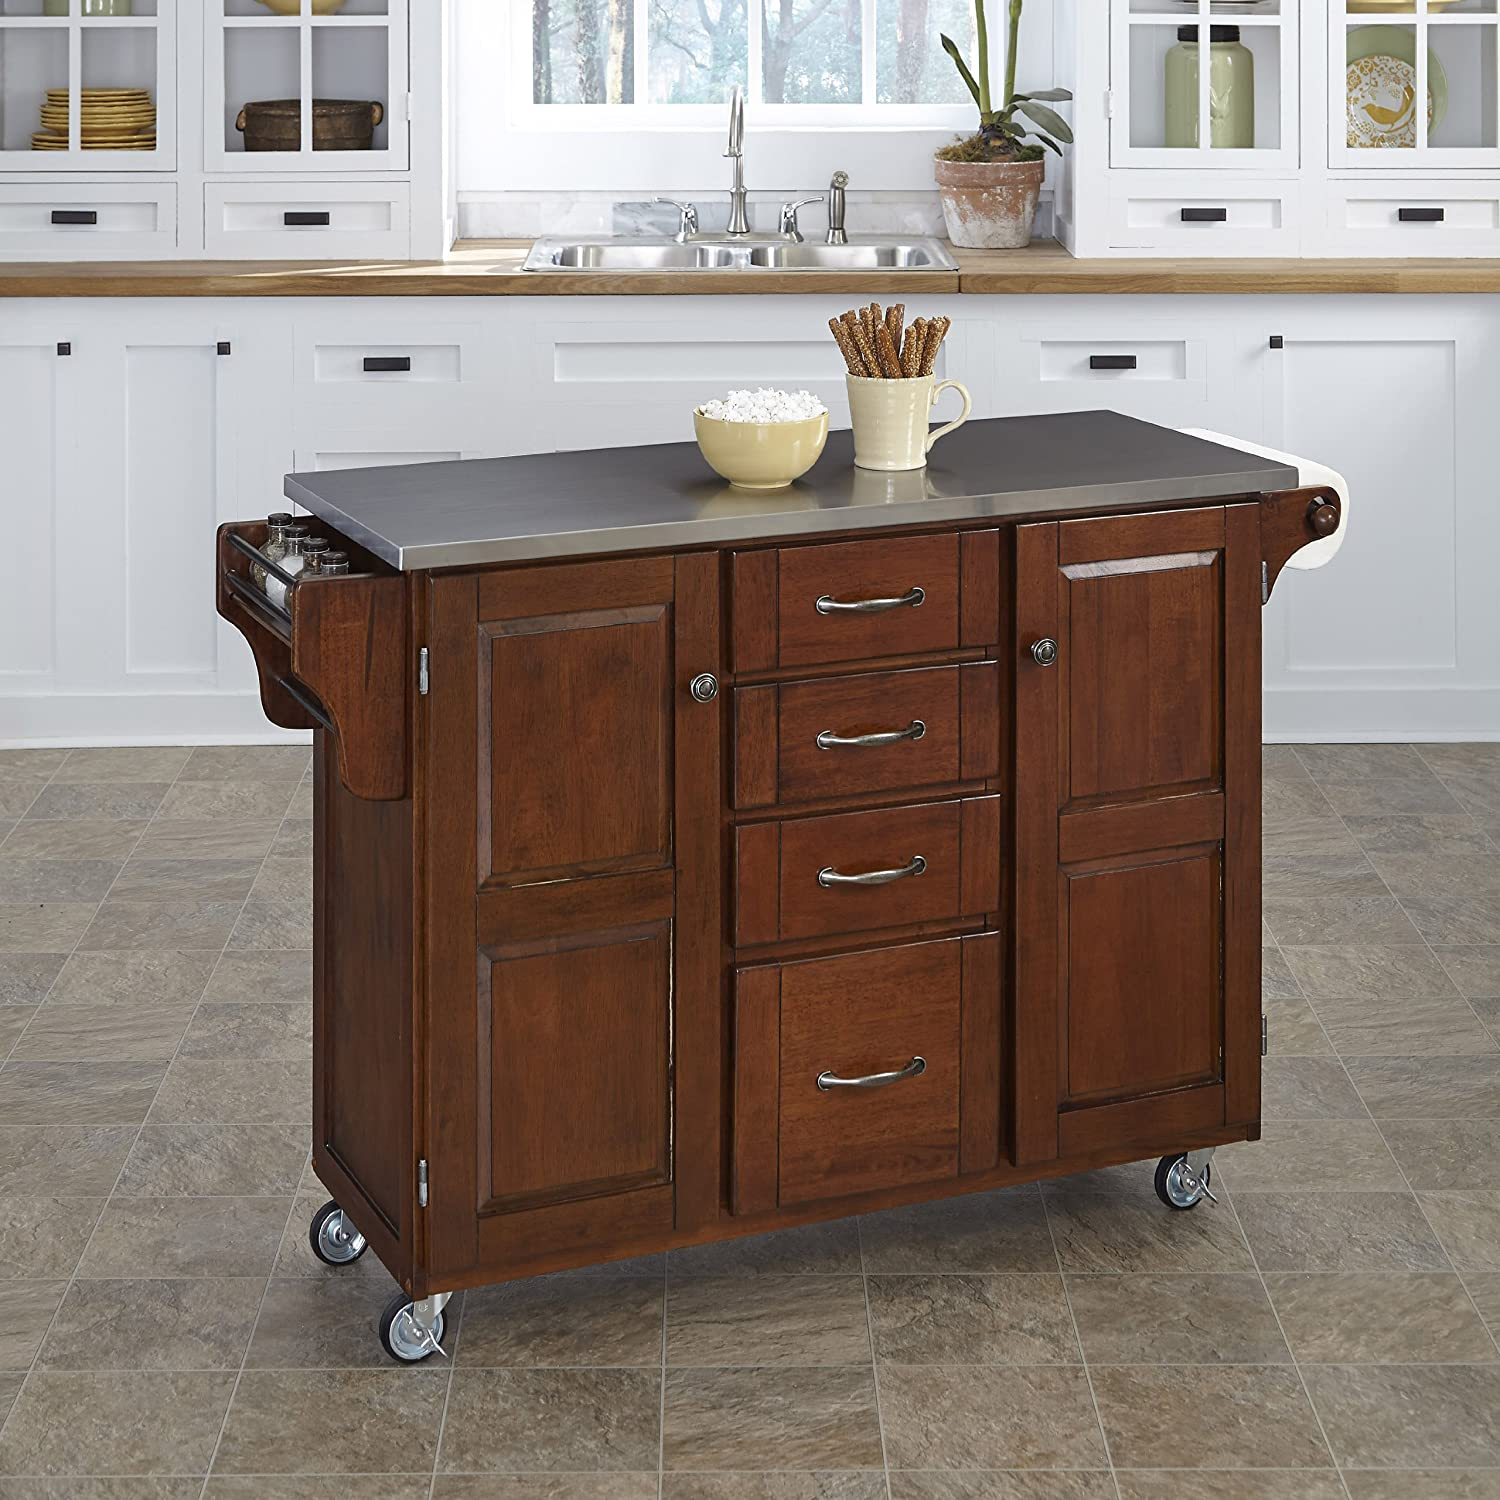 Create-a-Cart Medium Cherry 2 Door Cabinet Kitchen Cart with Stainless Steel Top by Home Styles